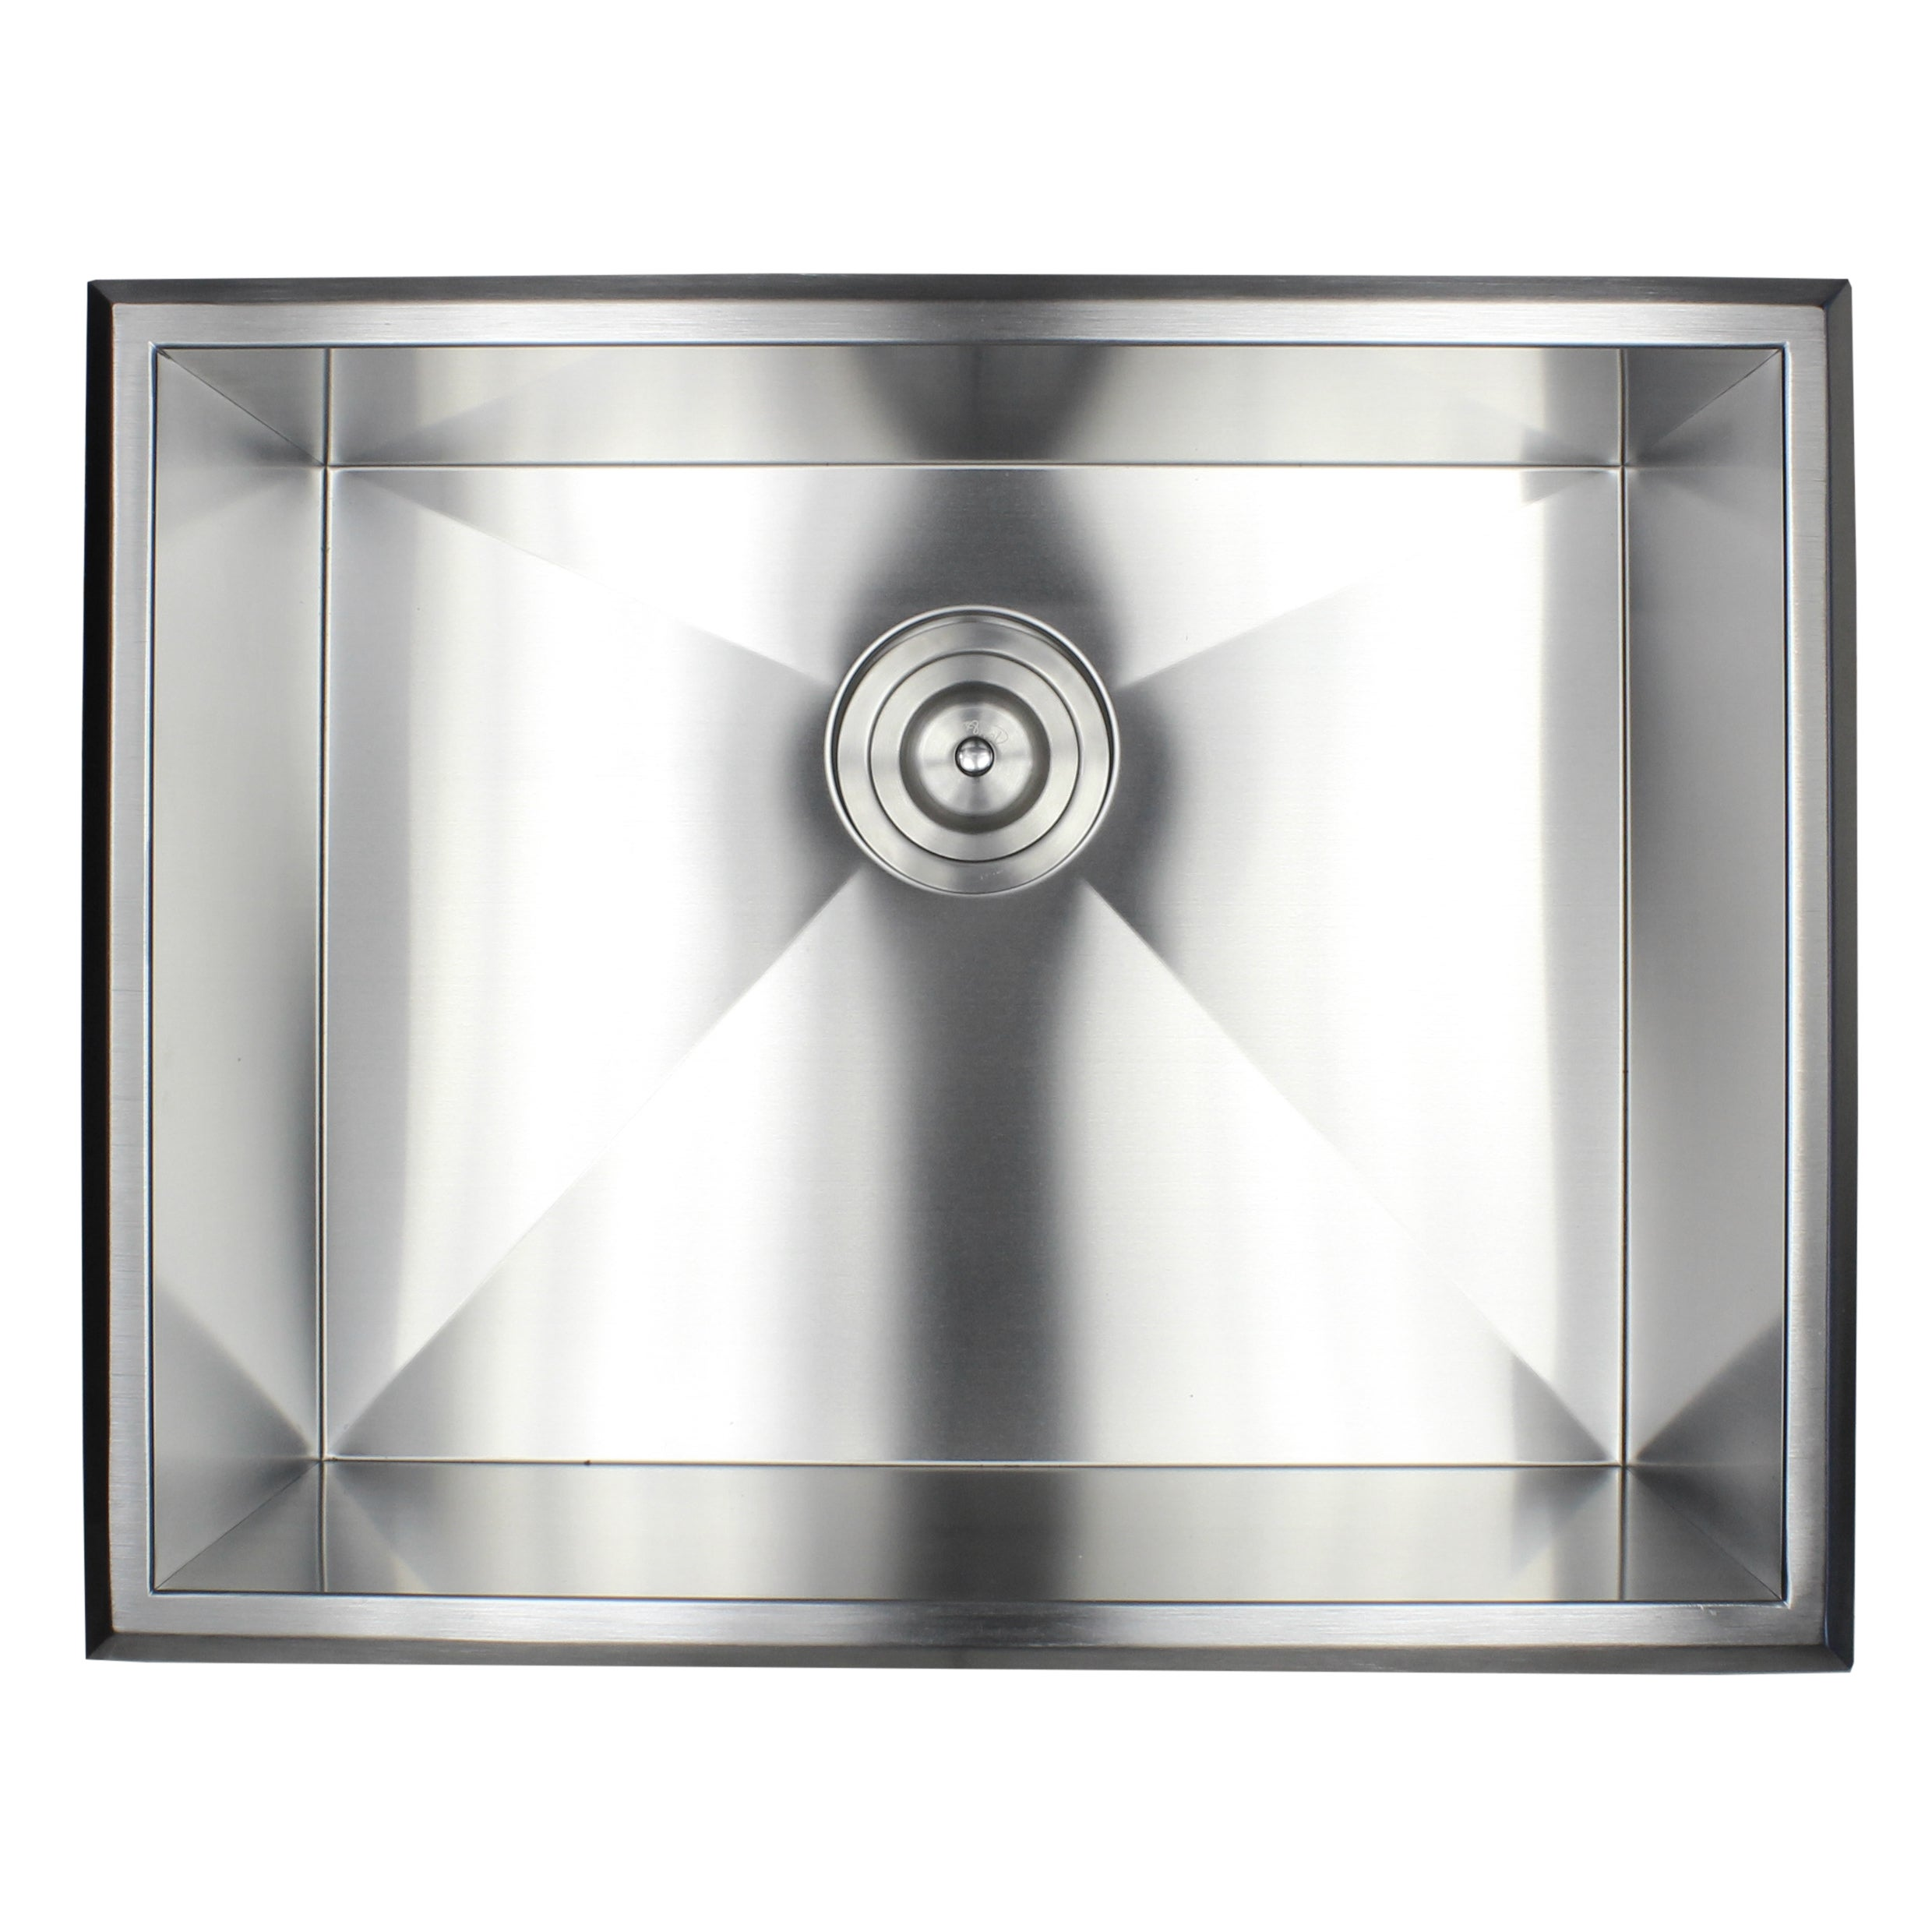 ariel 16 gauge stainless steel 23 inch single bowl kitchen sink combo   free shipping today   overstock com   20890558 ariel 16 gauge stainless steel 23 inch single bowl kitchen sink      rh   overstock com